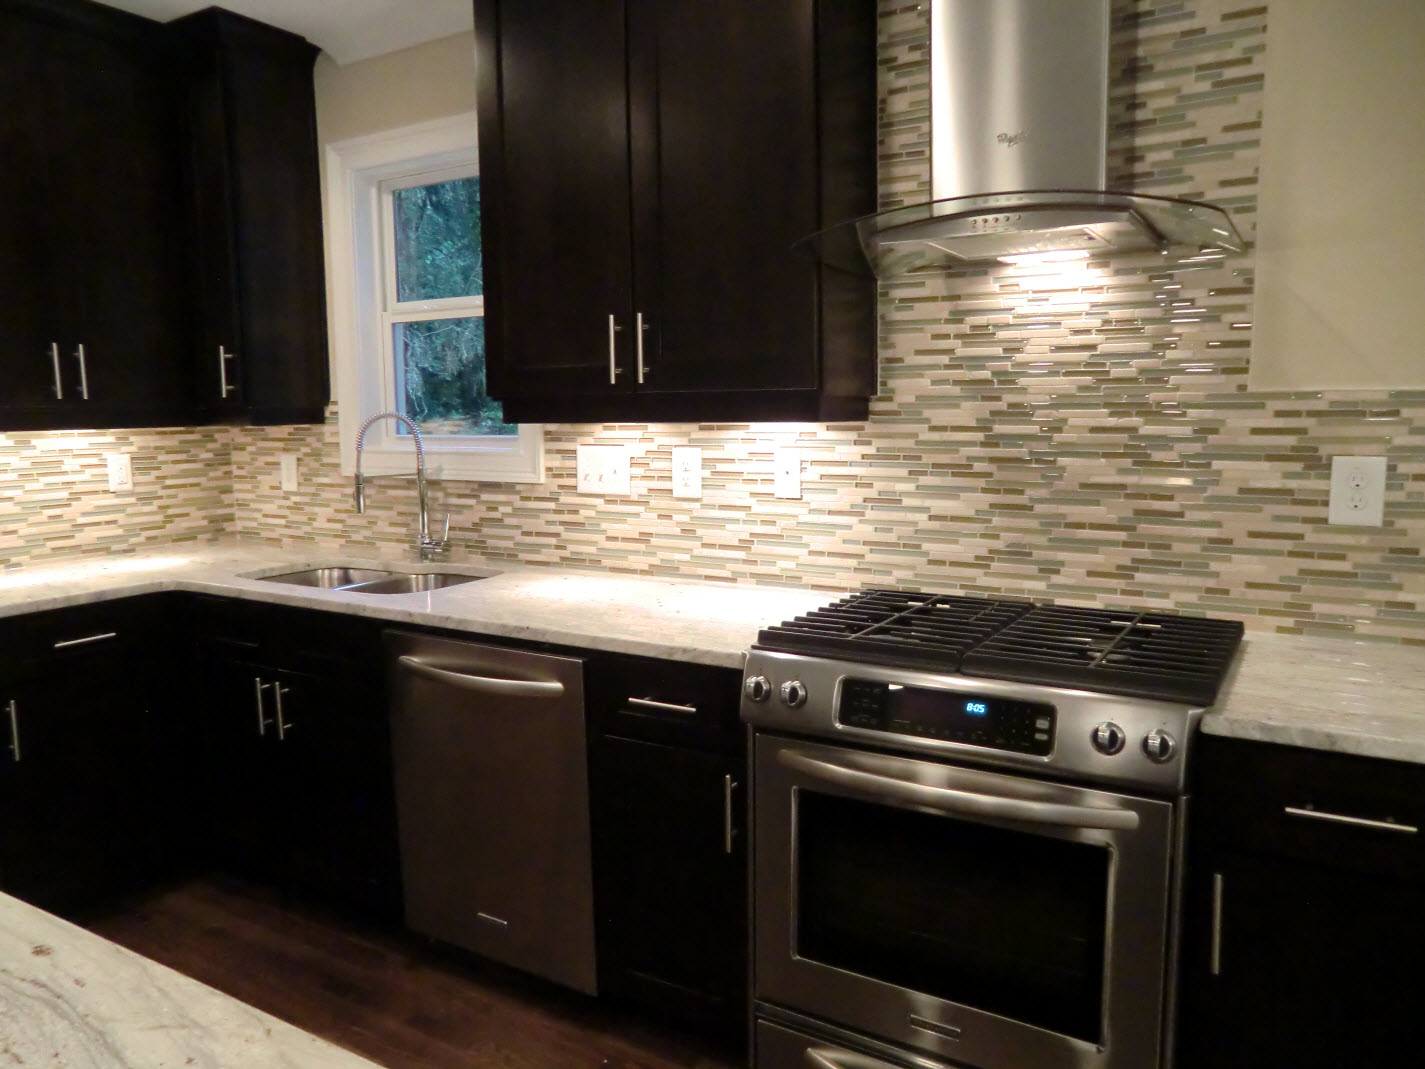 Showoff Kitchen With High End Kitchenaid Appliances!